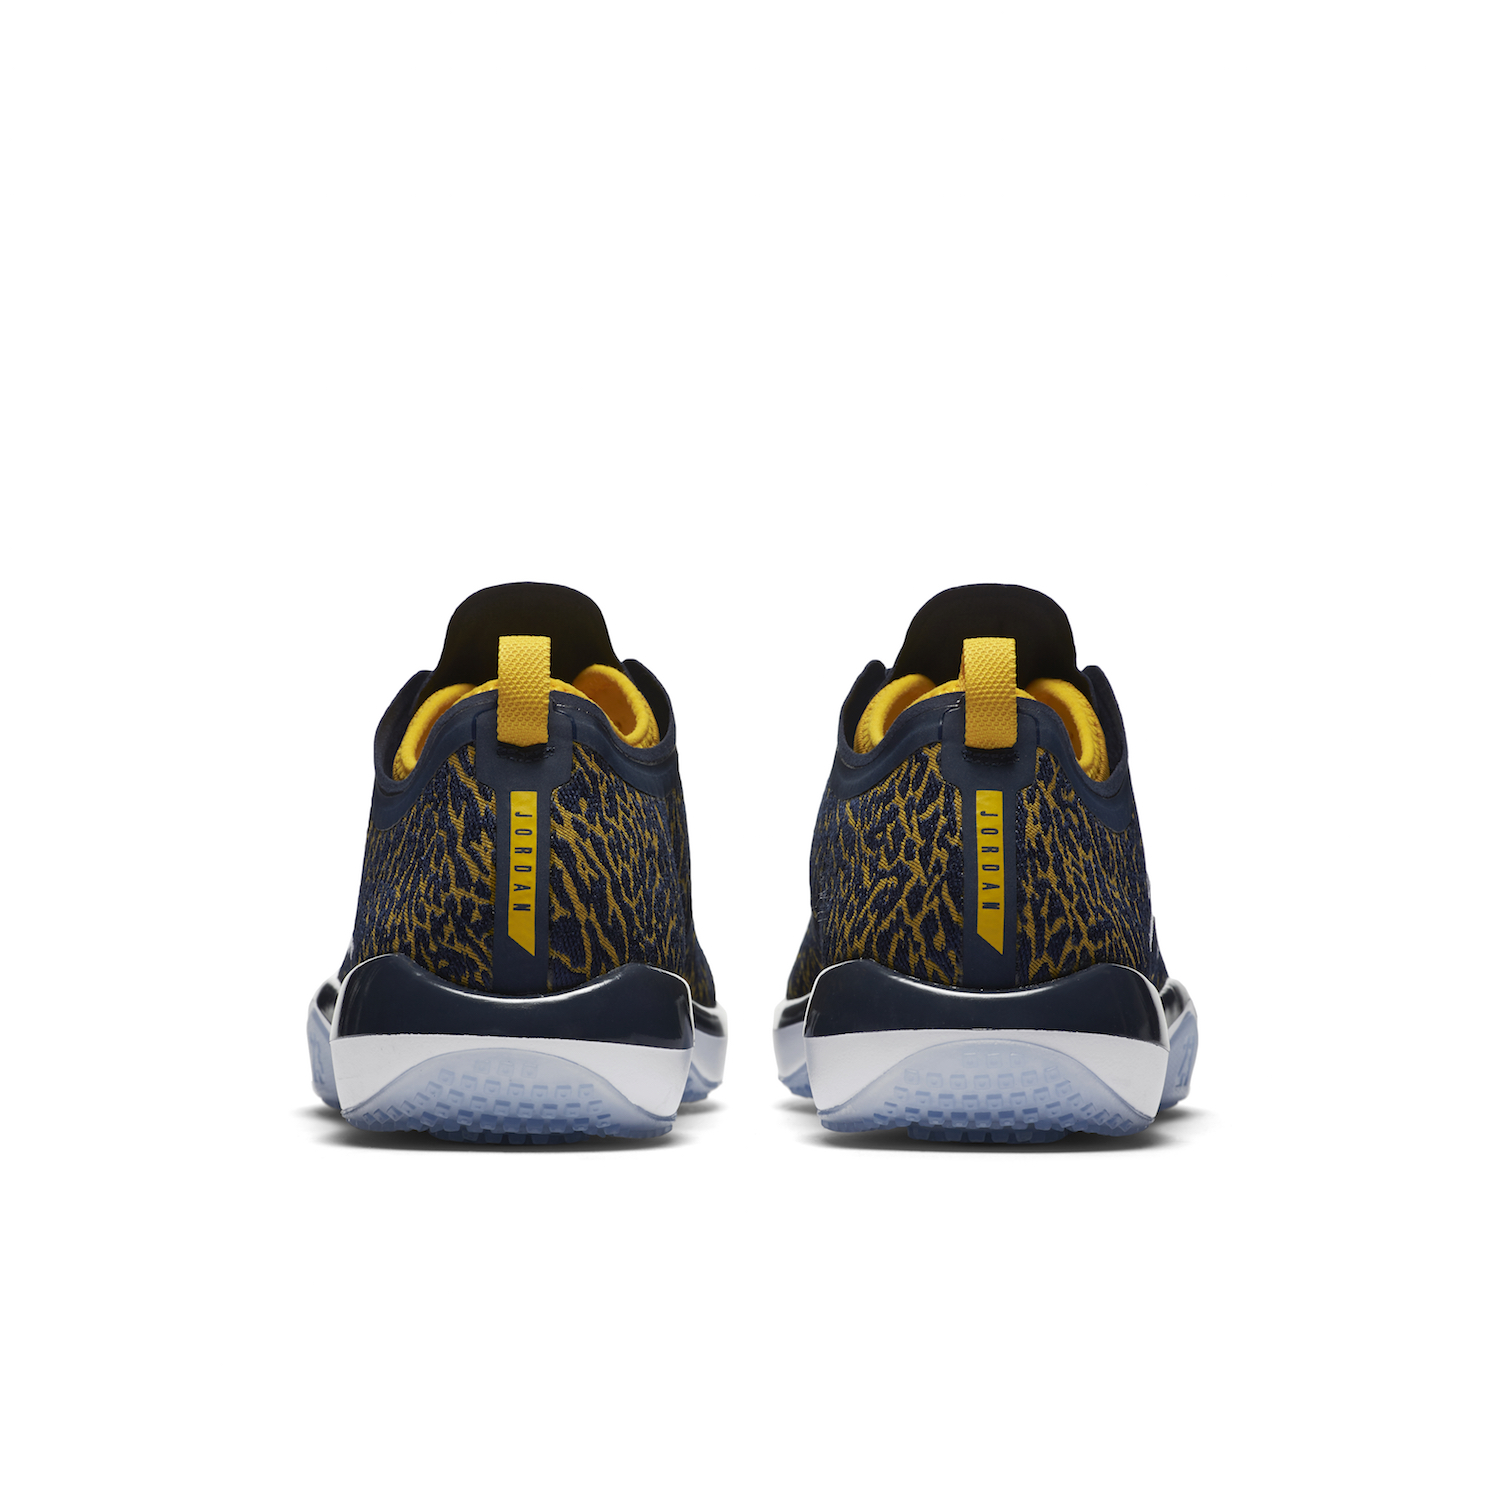 university of michigan jordan brand 7university of michigan jordan brand 7